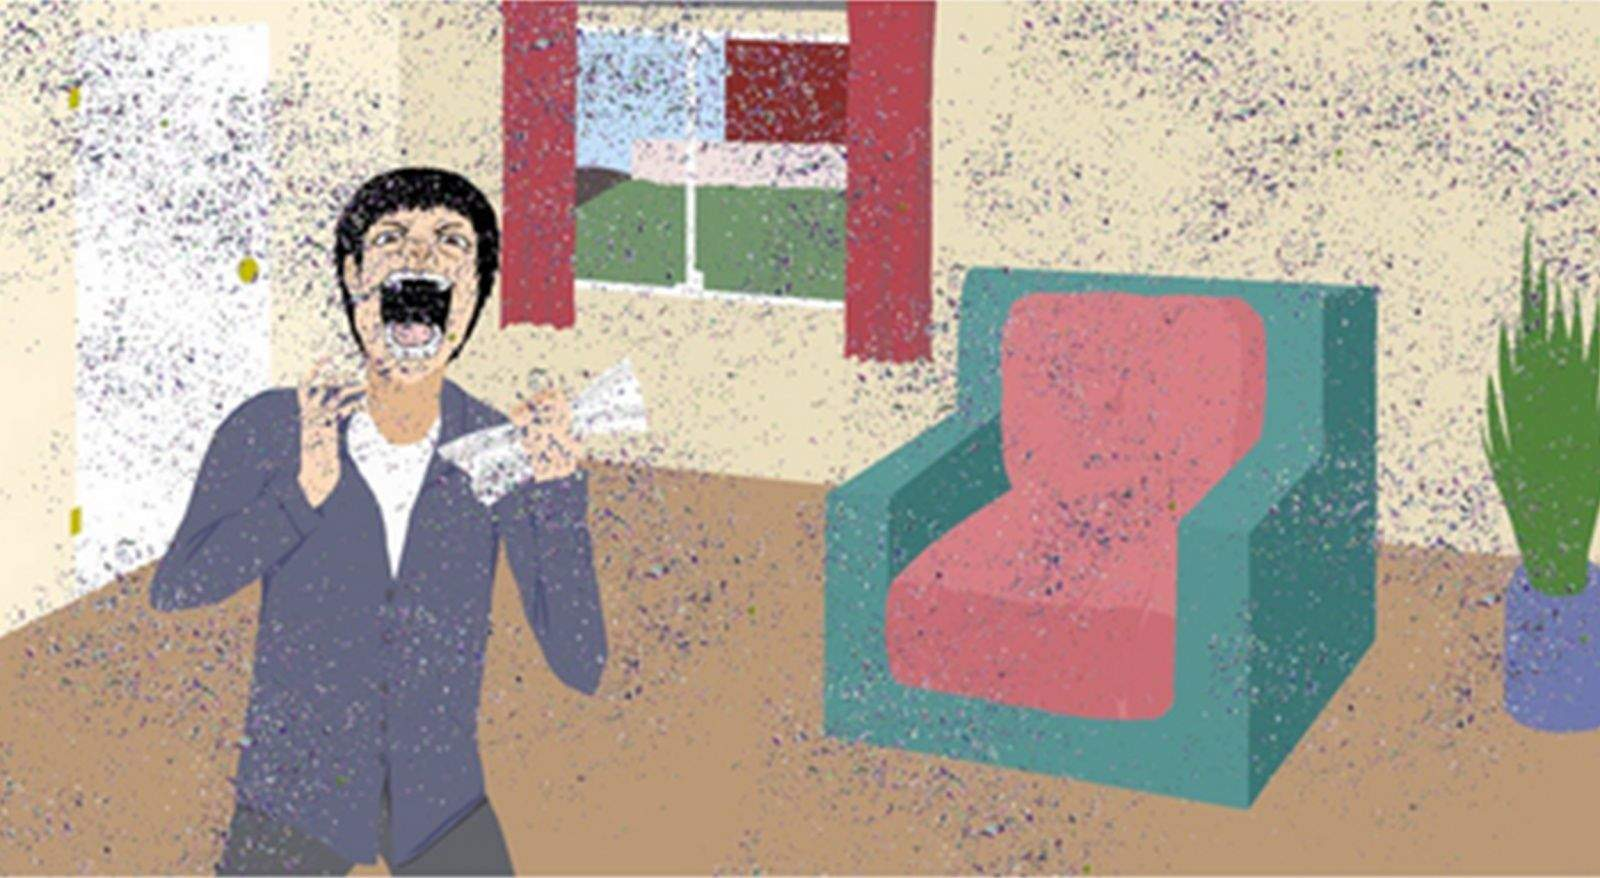 An artist rendering shows the reaction of a recipient of a glitter bomb. Illustration: shipyourenemiesglitter.com